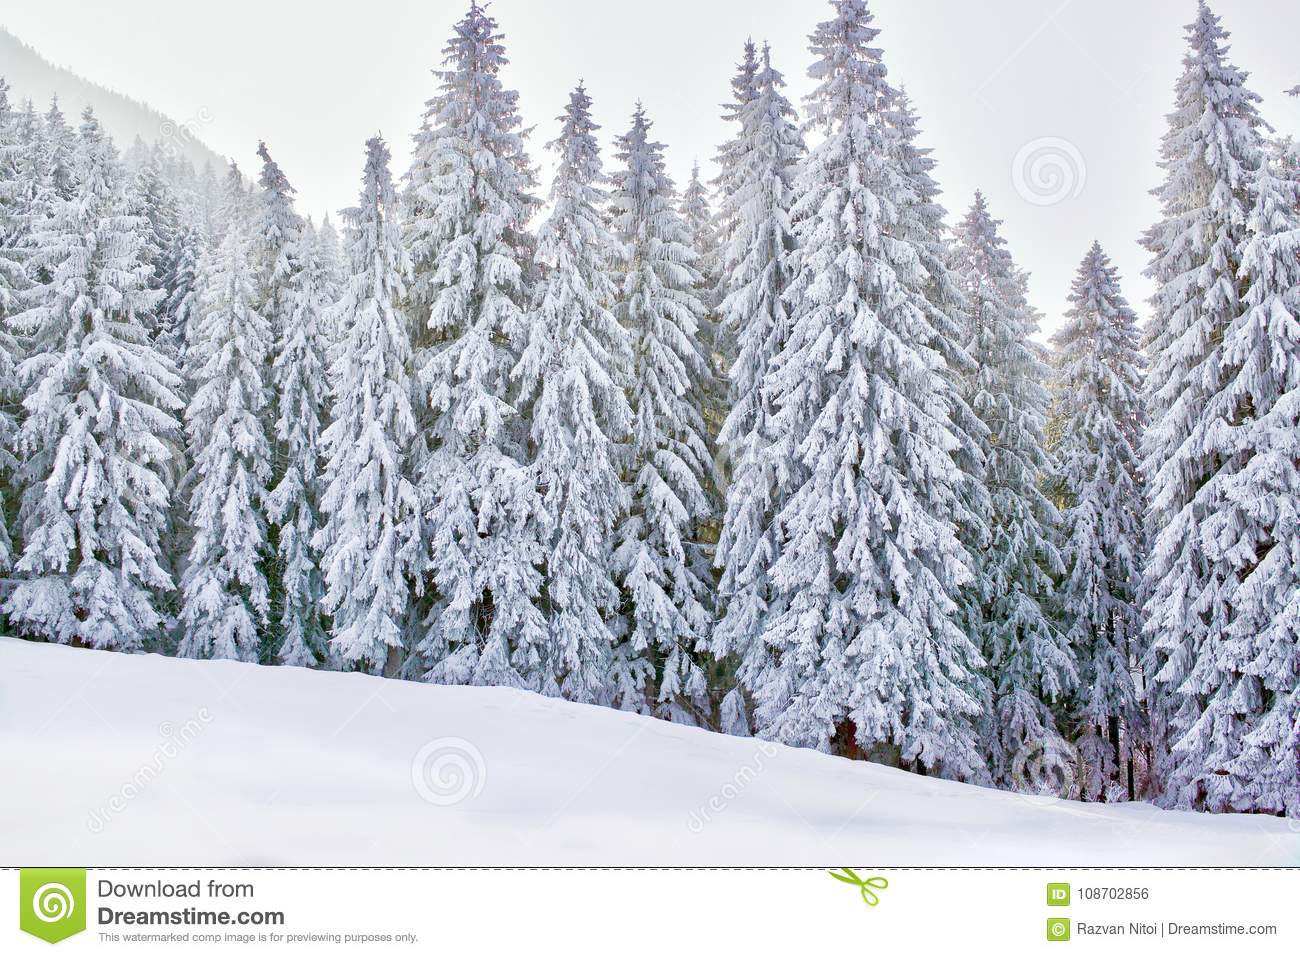 Winter wonderland with snowy trees and mountains